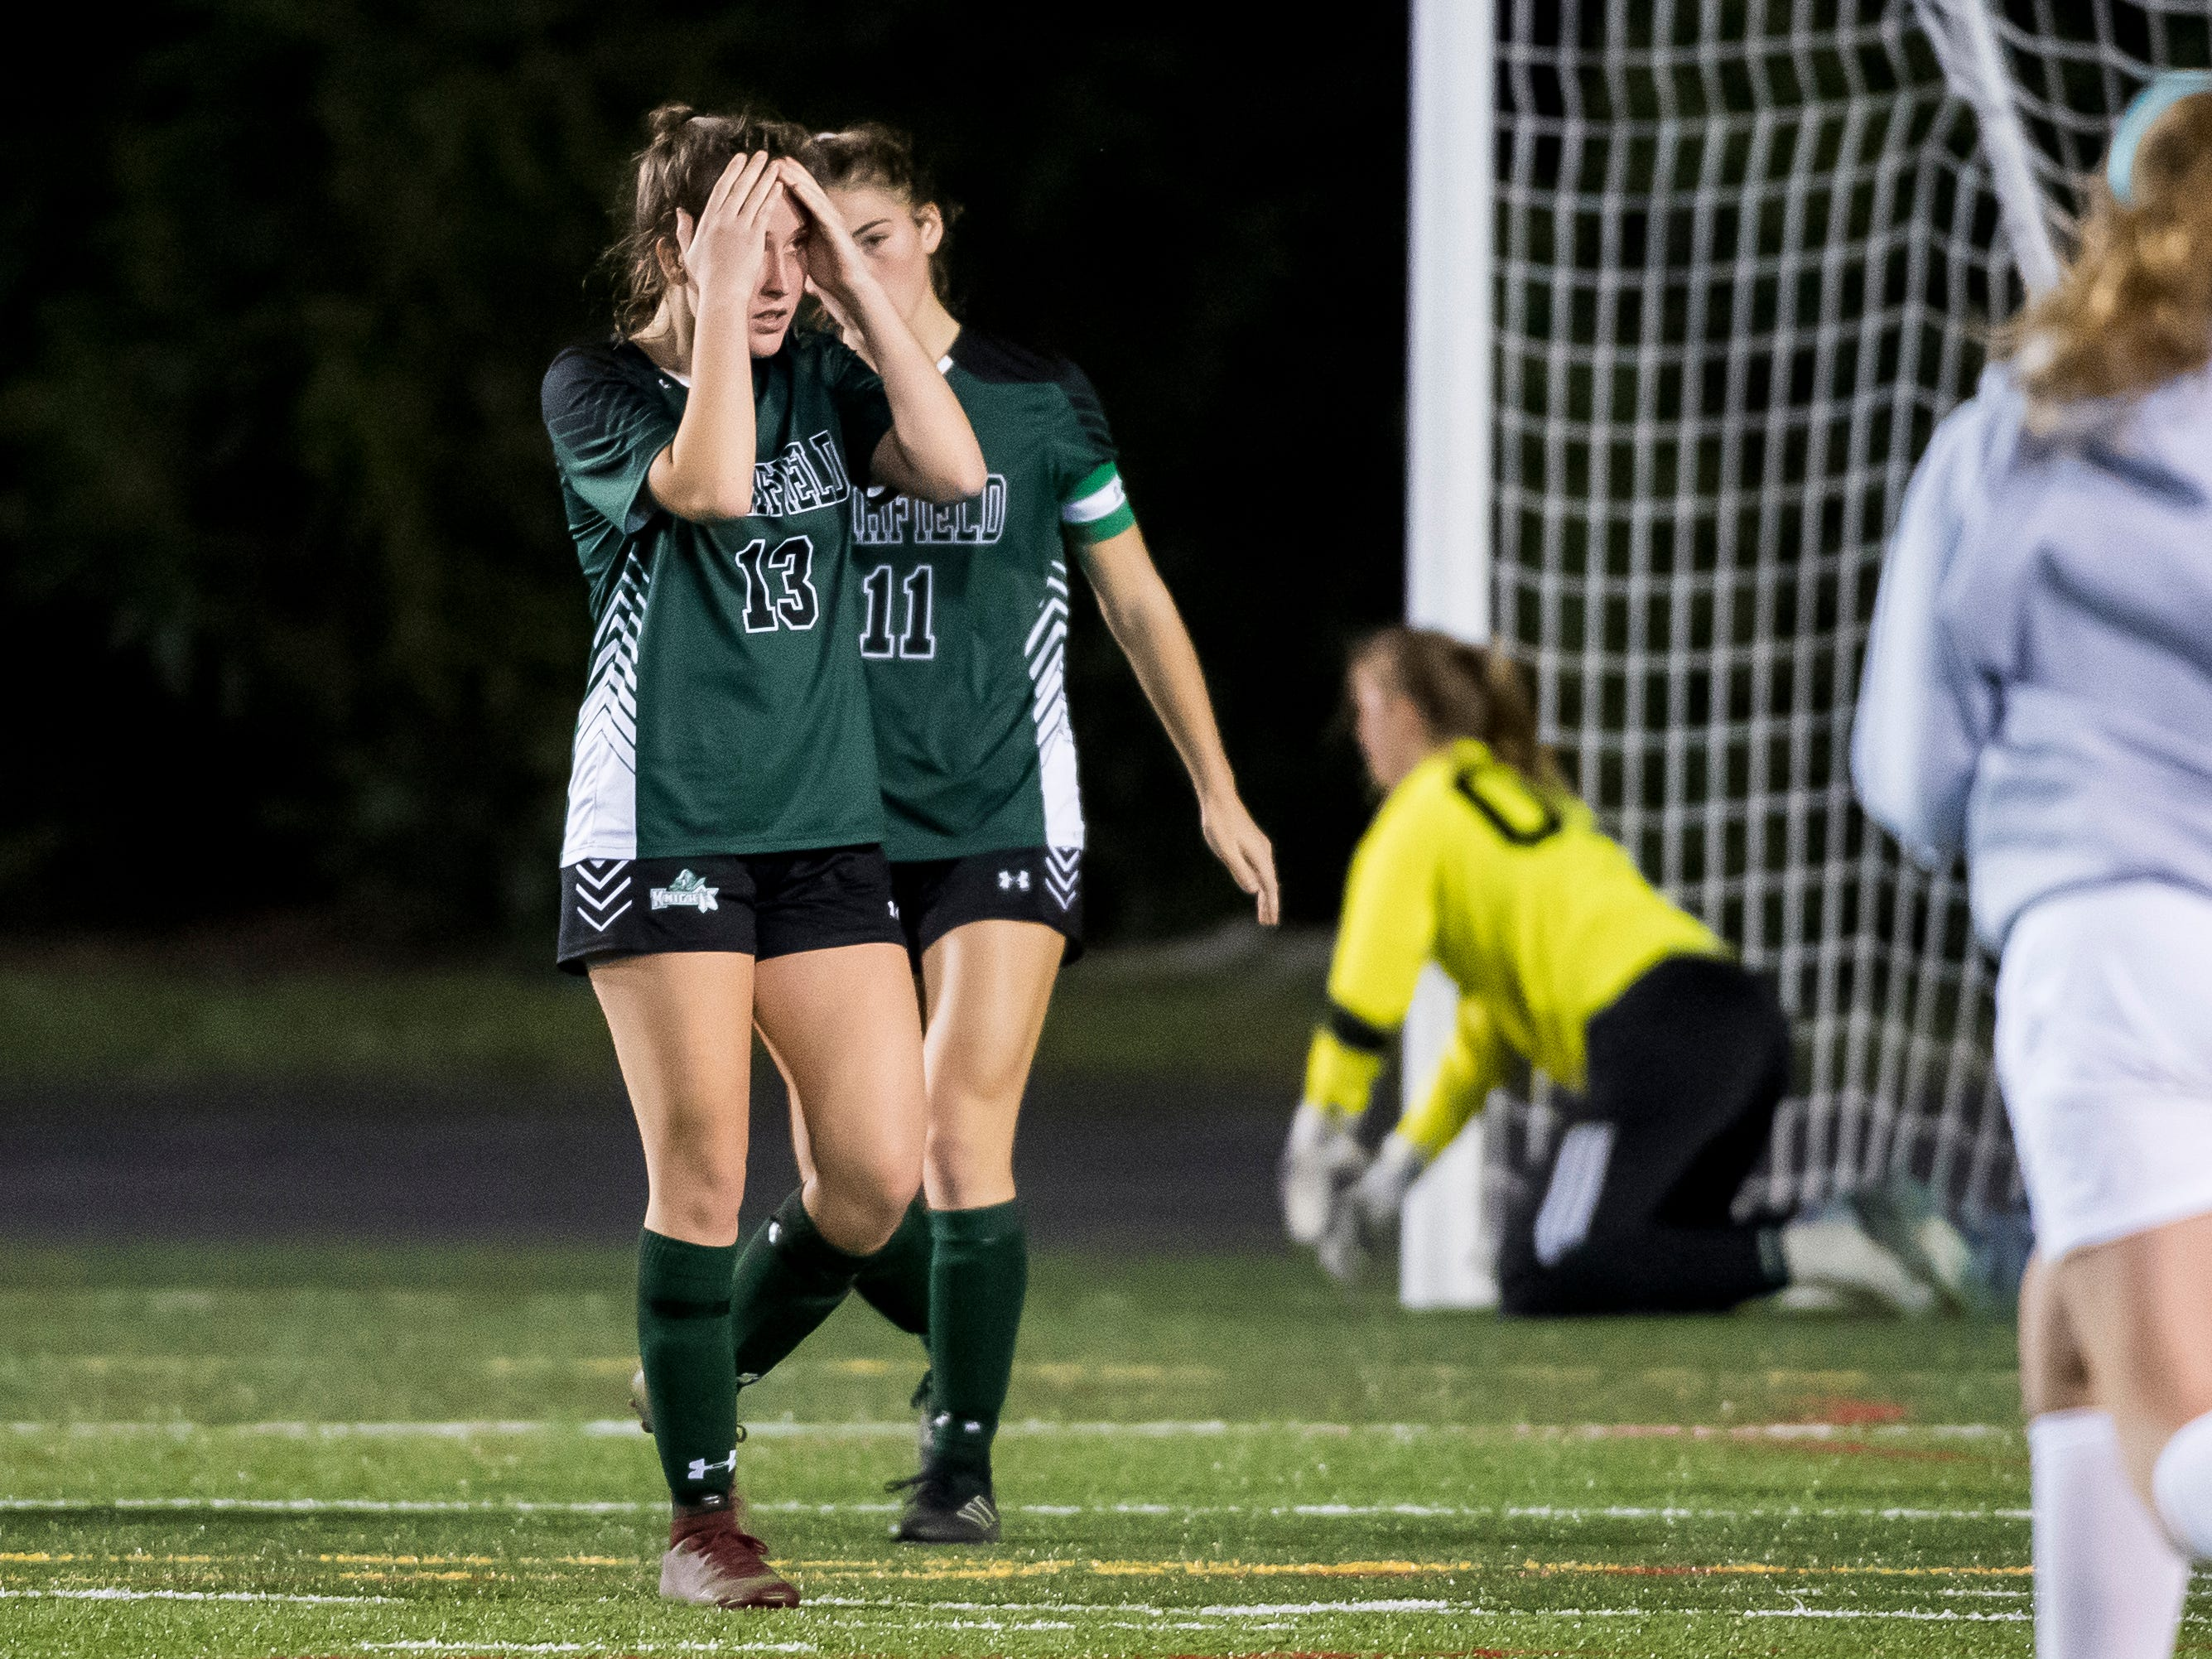 Fairfield's Honey Strosnider (13) reacts after the Knights fell 1-0 in overtime during the PIAA District III Class A championship game at Hershey Park Stadium on Wednesday, October 31, 2018.